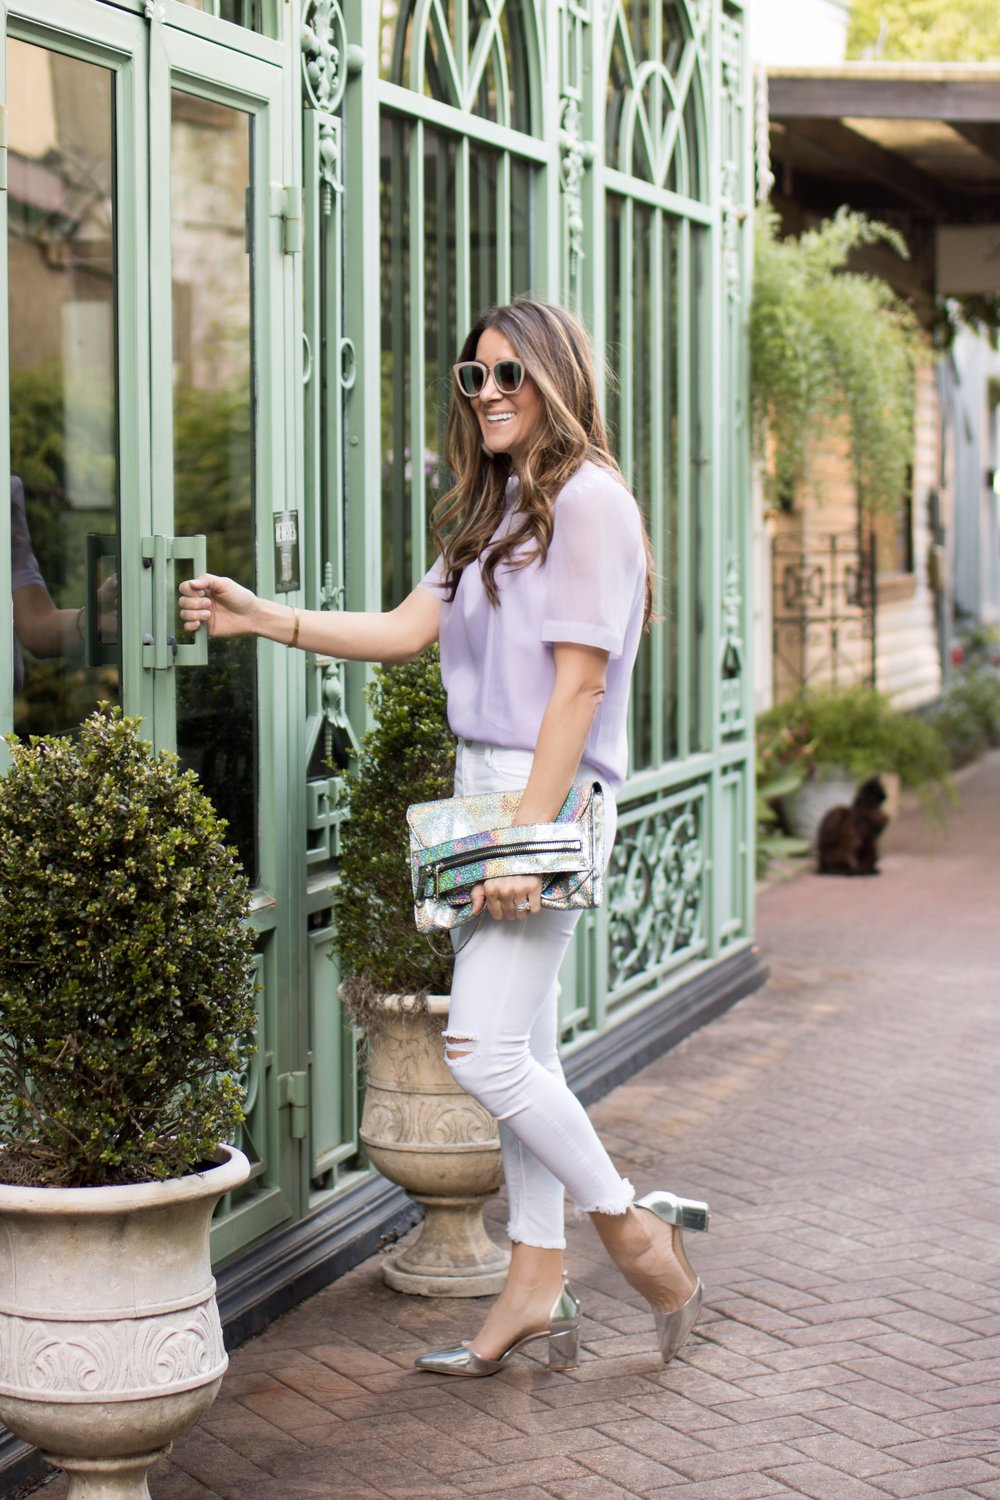 TOP: TARGET  AND SIMILAR  HERE  AND  HERE  | JEANS: BLANK NYC SIMILAR  HERE  AND  HERE  | SHOES:  ANTONIO MILANI  FROM DILLARDS | BAG: MILLY (THIS IS OLDER...SIMILAR  HERE  AND  HERE )|NECKLACE: DIANA WARNER (SIMILAR  HERE )| EARRINGS: LELE SADOUGHI ( HERE ) | SUNGLASSES:  JIMMY CHOO  | BRACELET: CARTIER